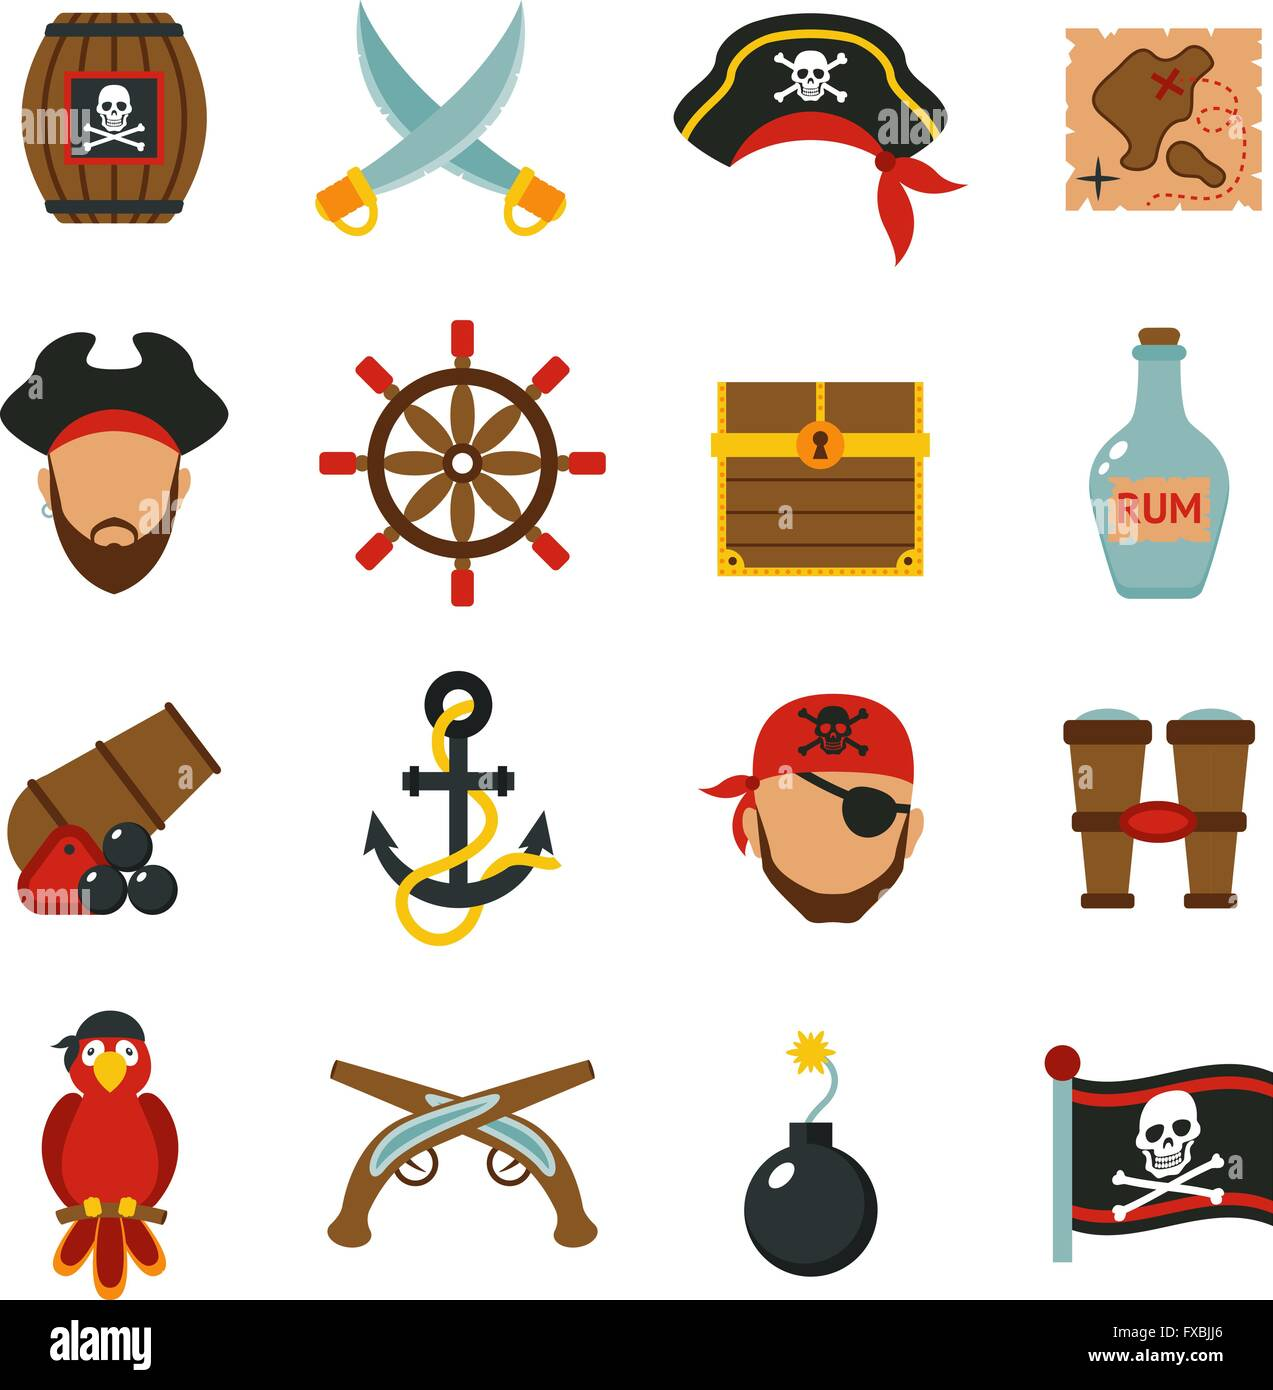 Pirate icons set flat Stock Vector Art & Illustration, Vector Image